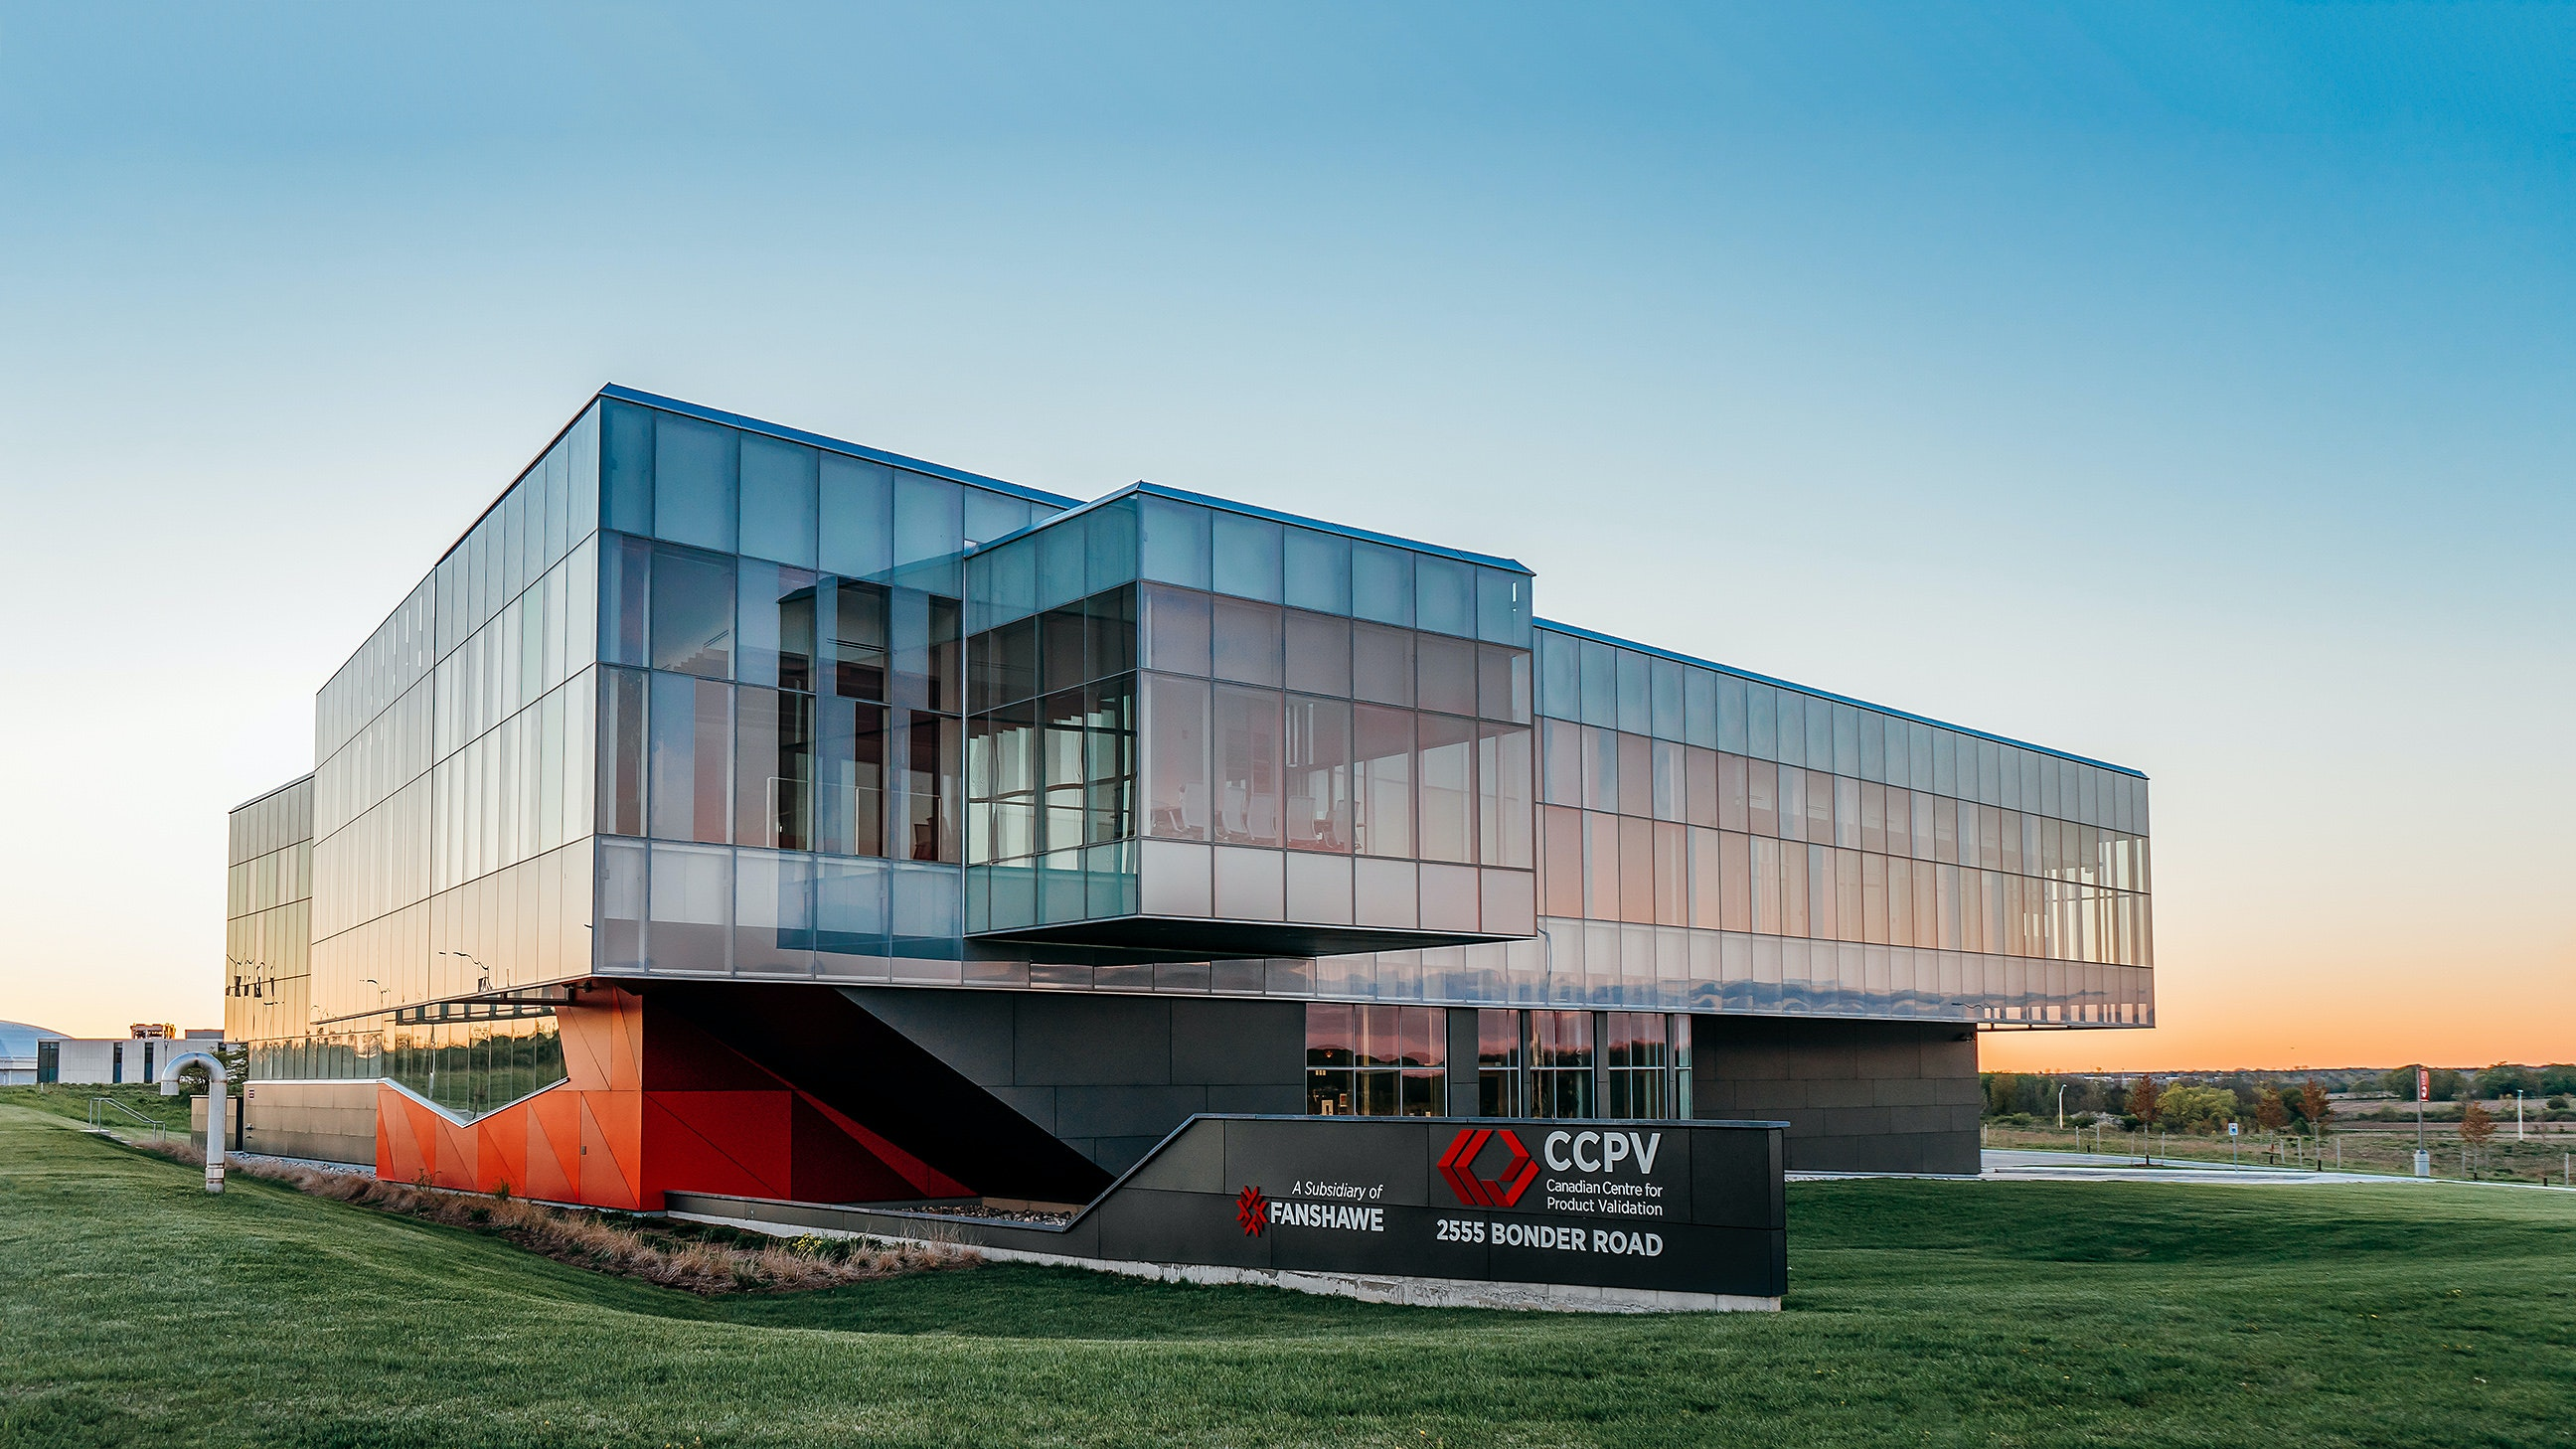 Exterior Photography of Canadian Centre for Product Validation (CCPV), Fanshawe College / architects Tillmann Ruth Robinson